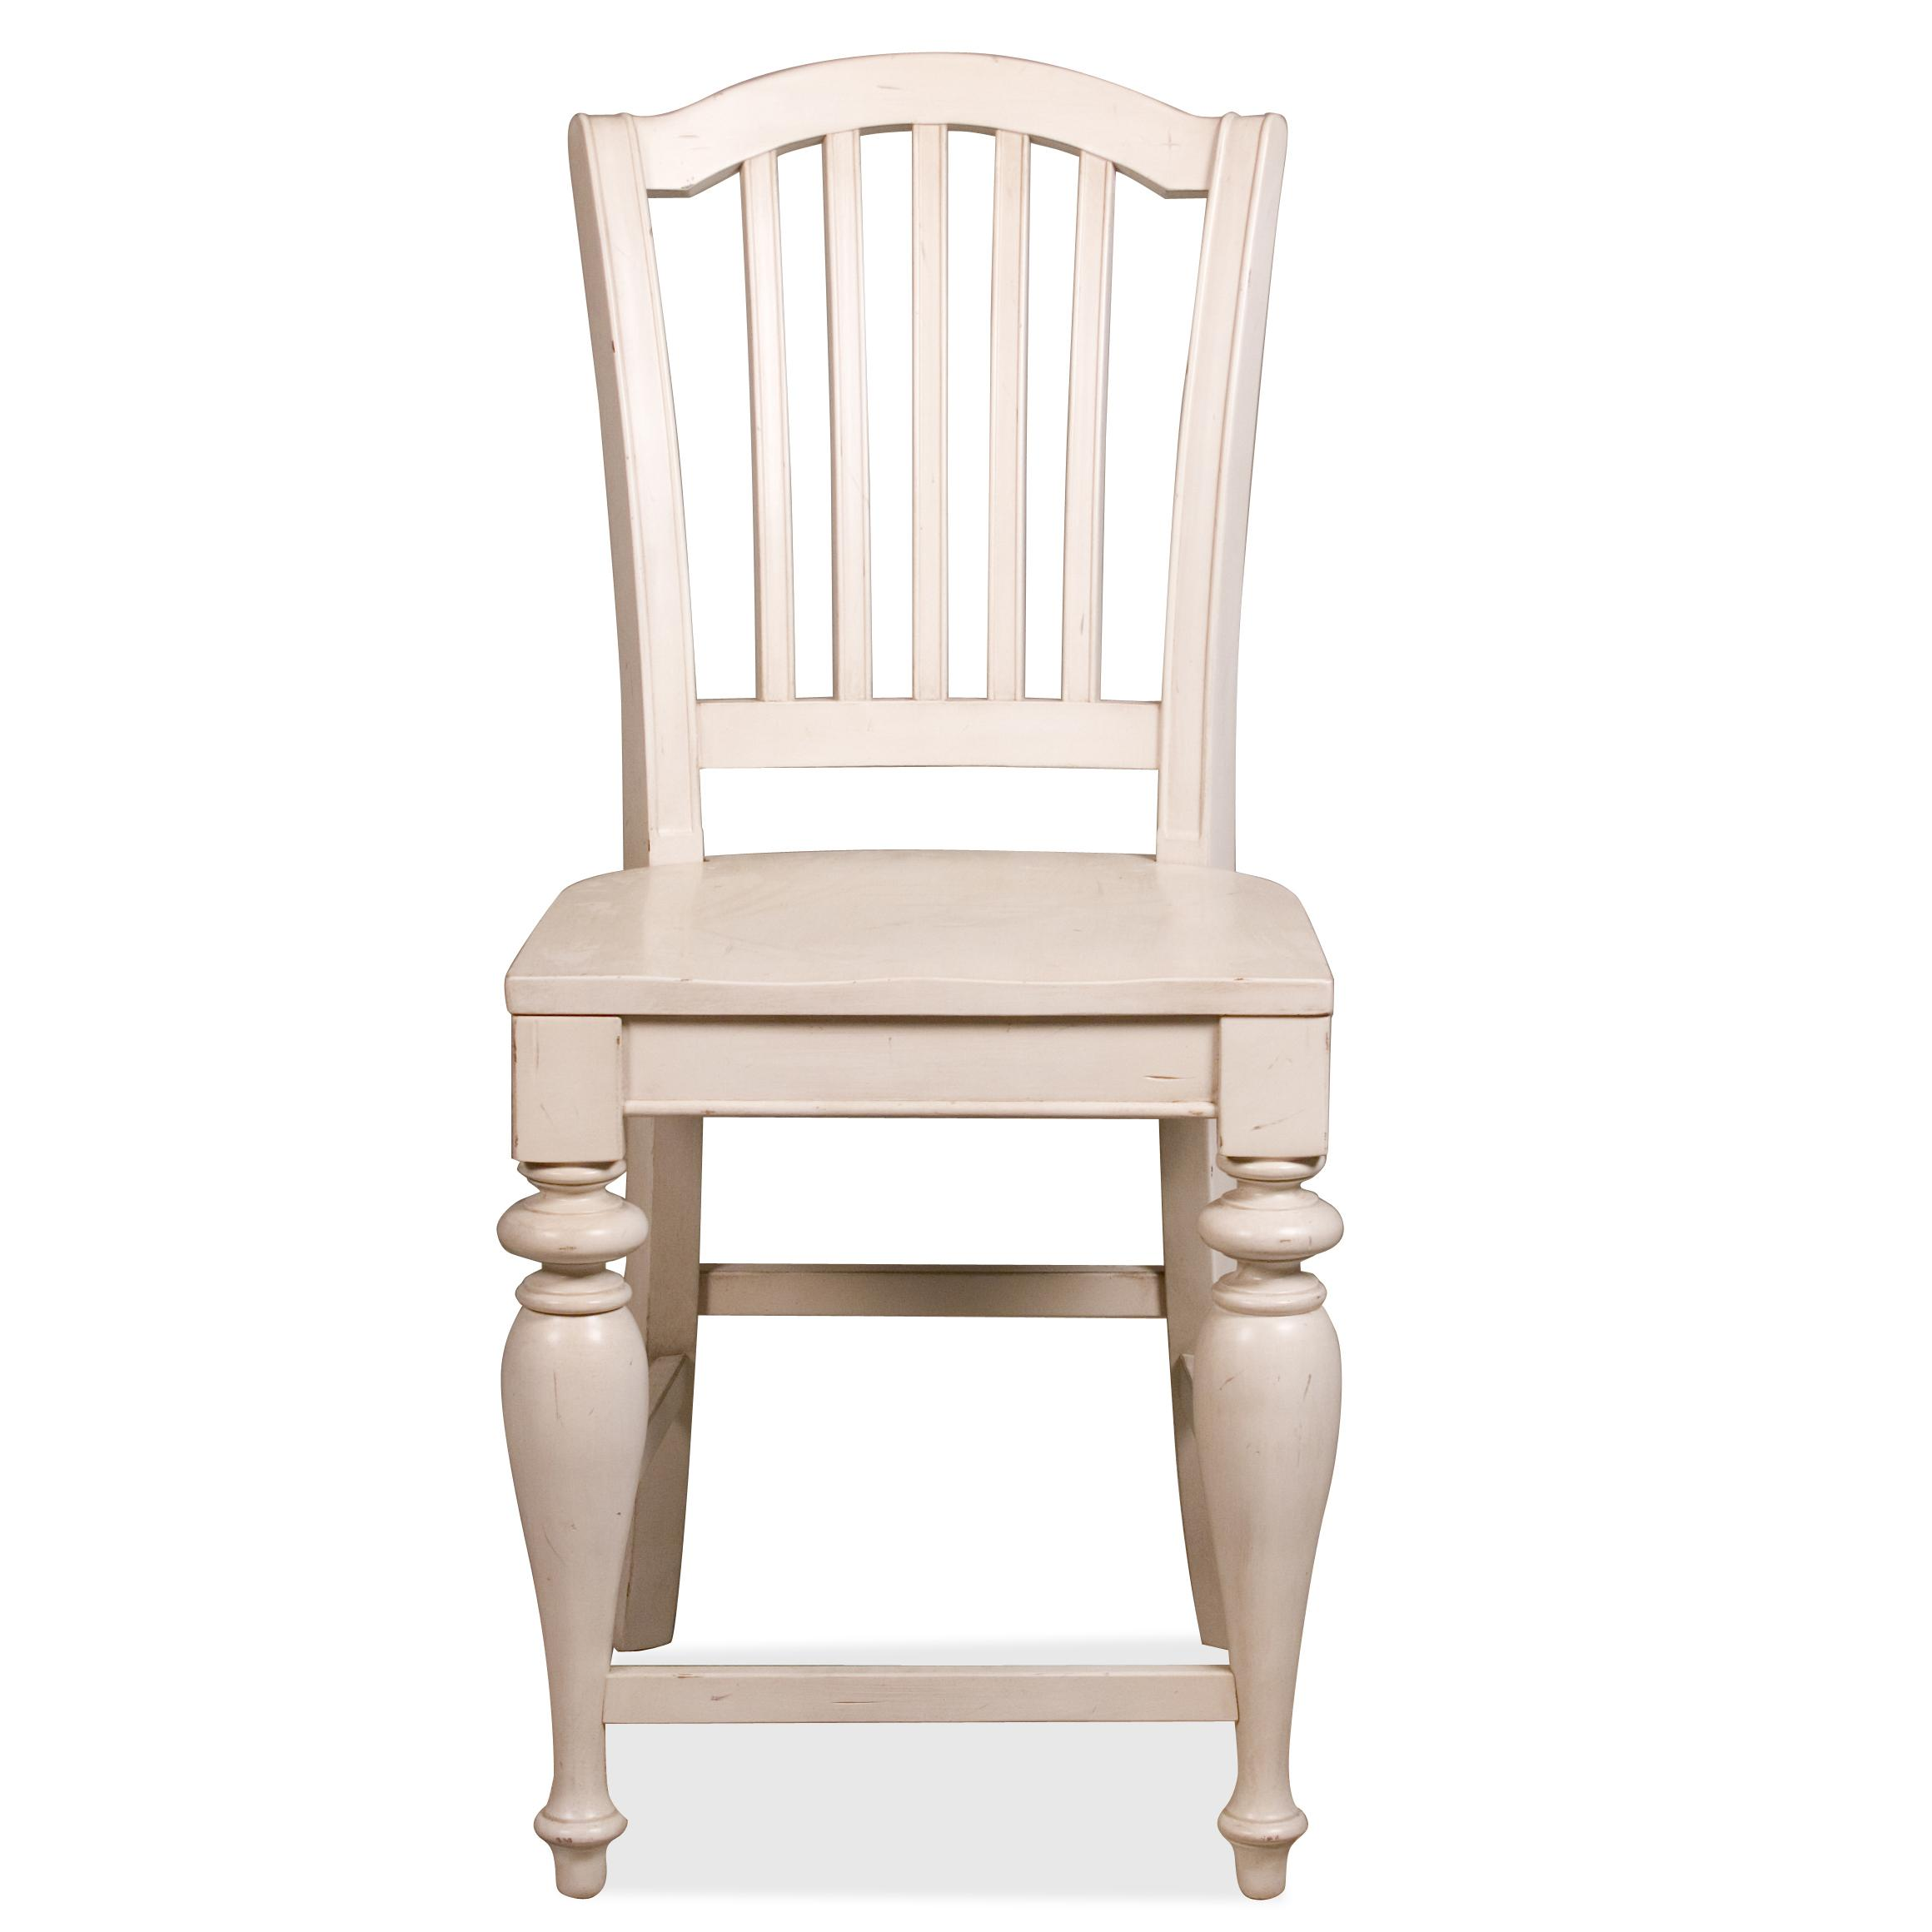 Riverside Furniture Mix N Match Chairs 36455 Counter